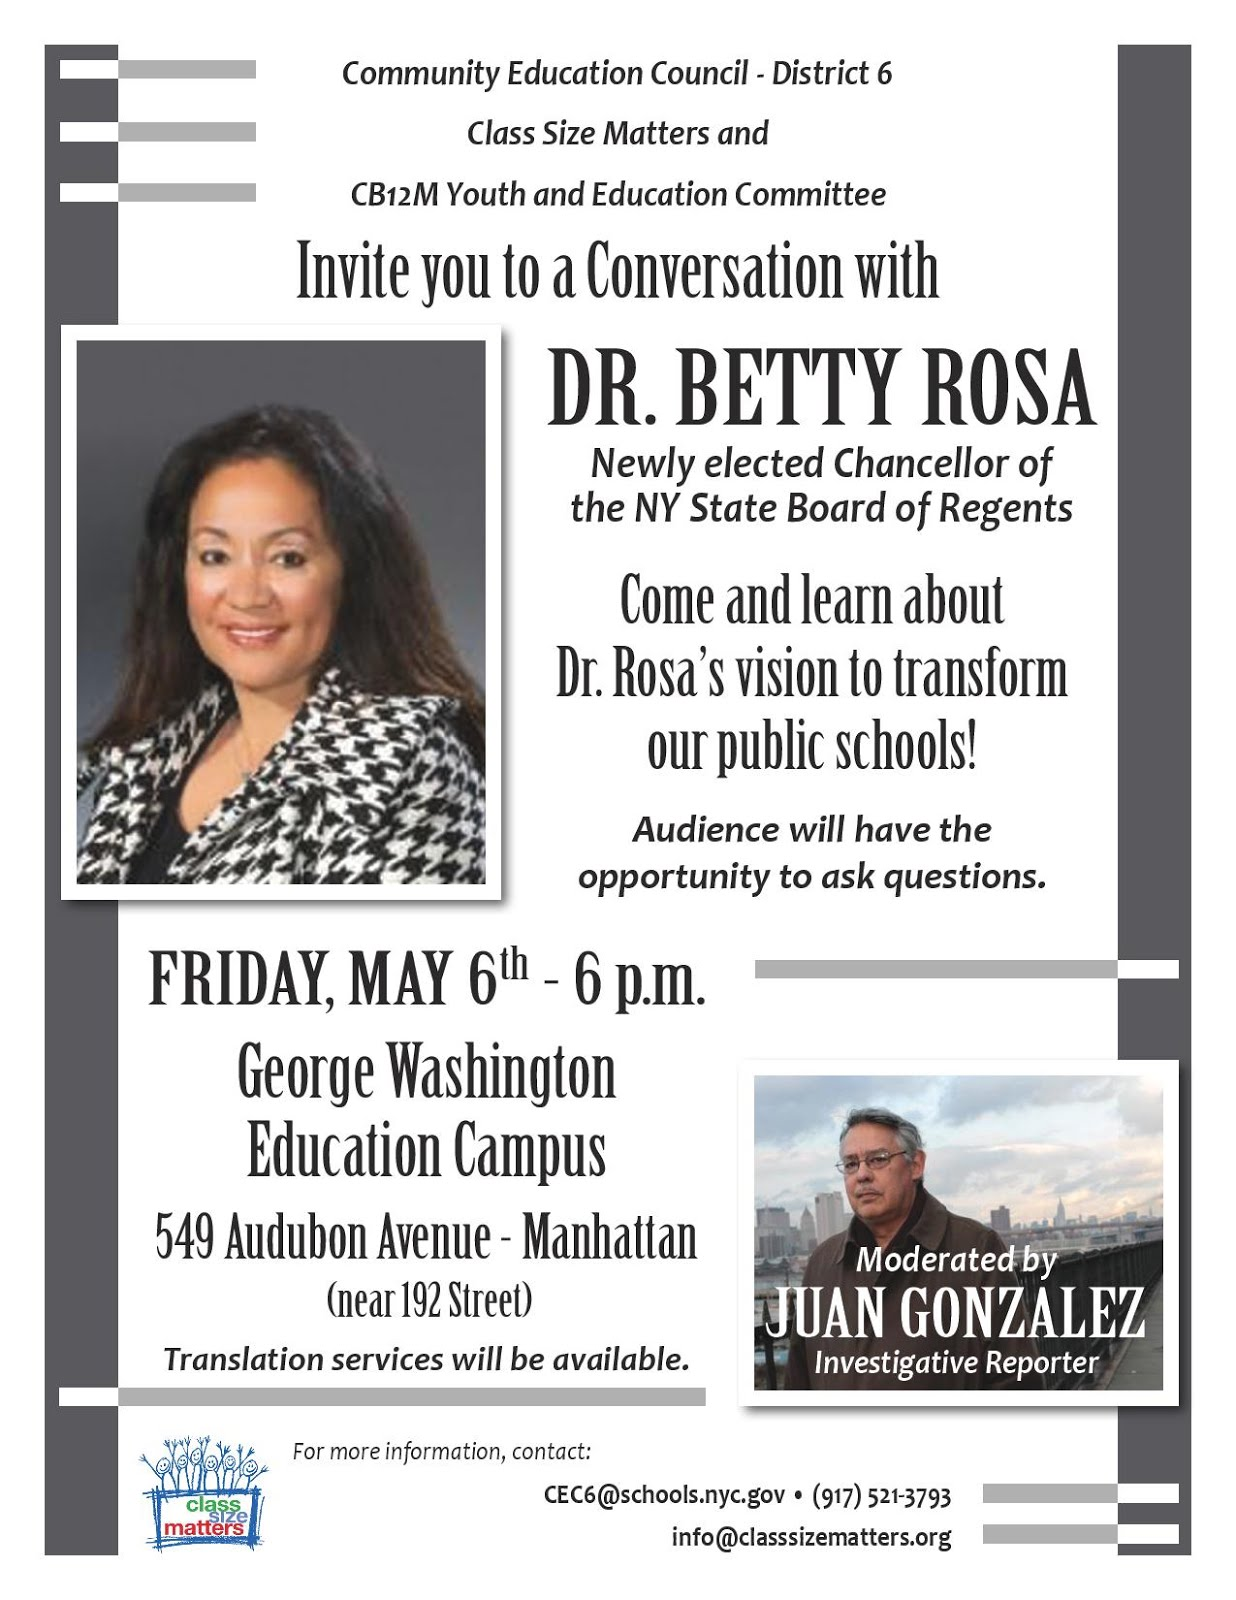 Join us for a conversation with Dr. Betty Rosa, new Chancellor of the NYS Board of Regents